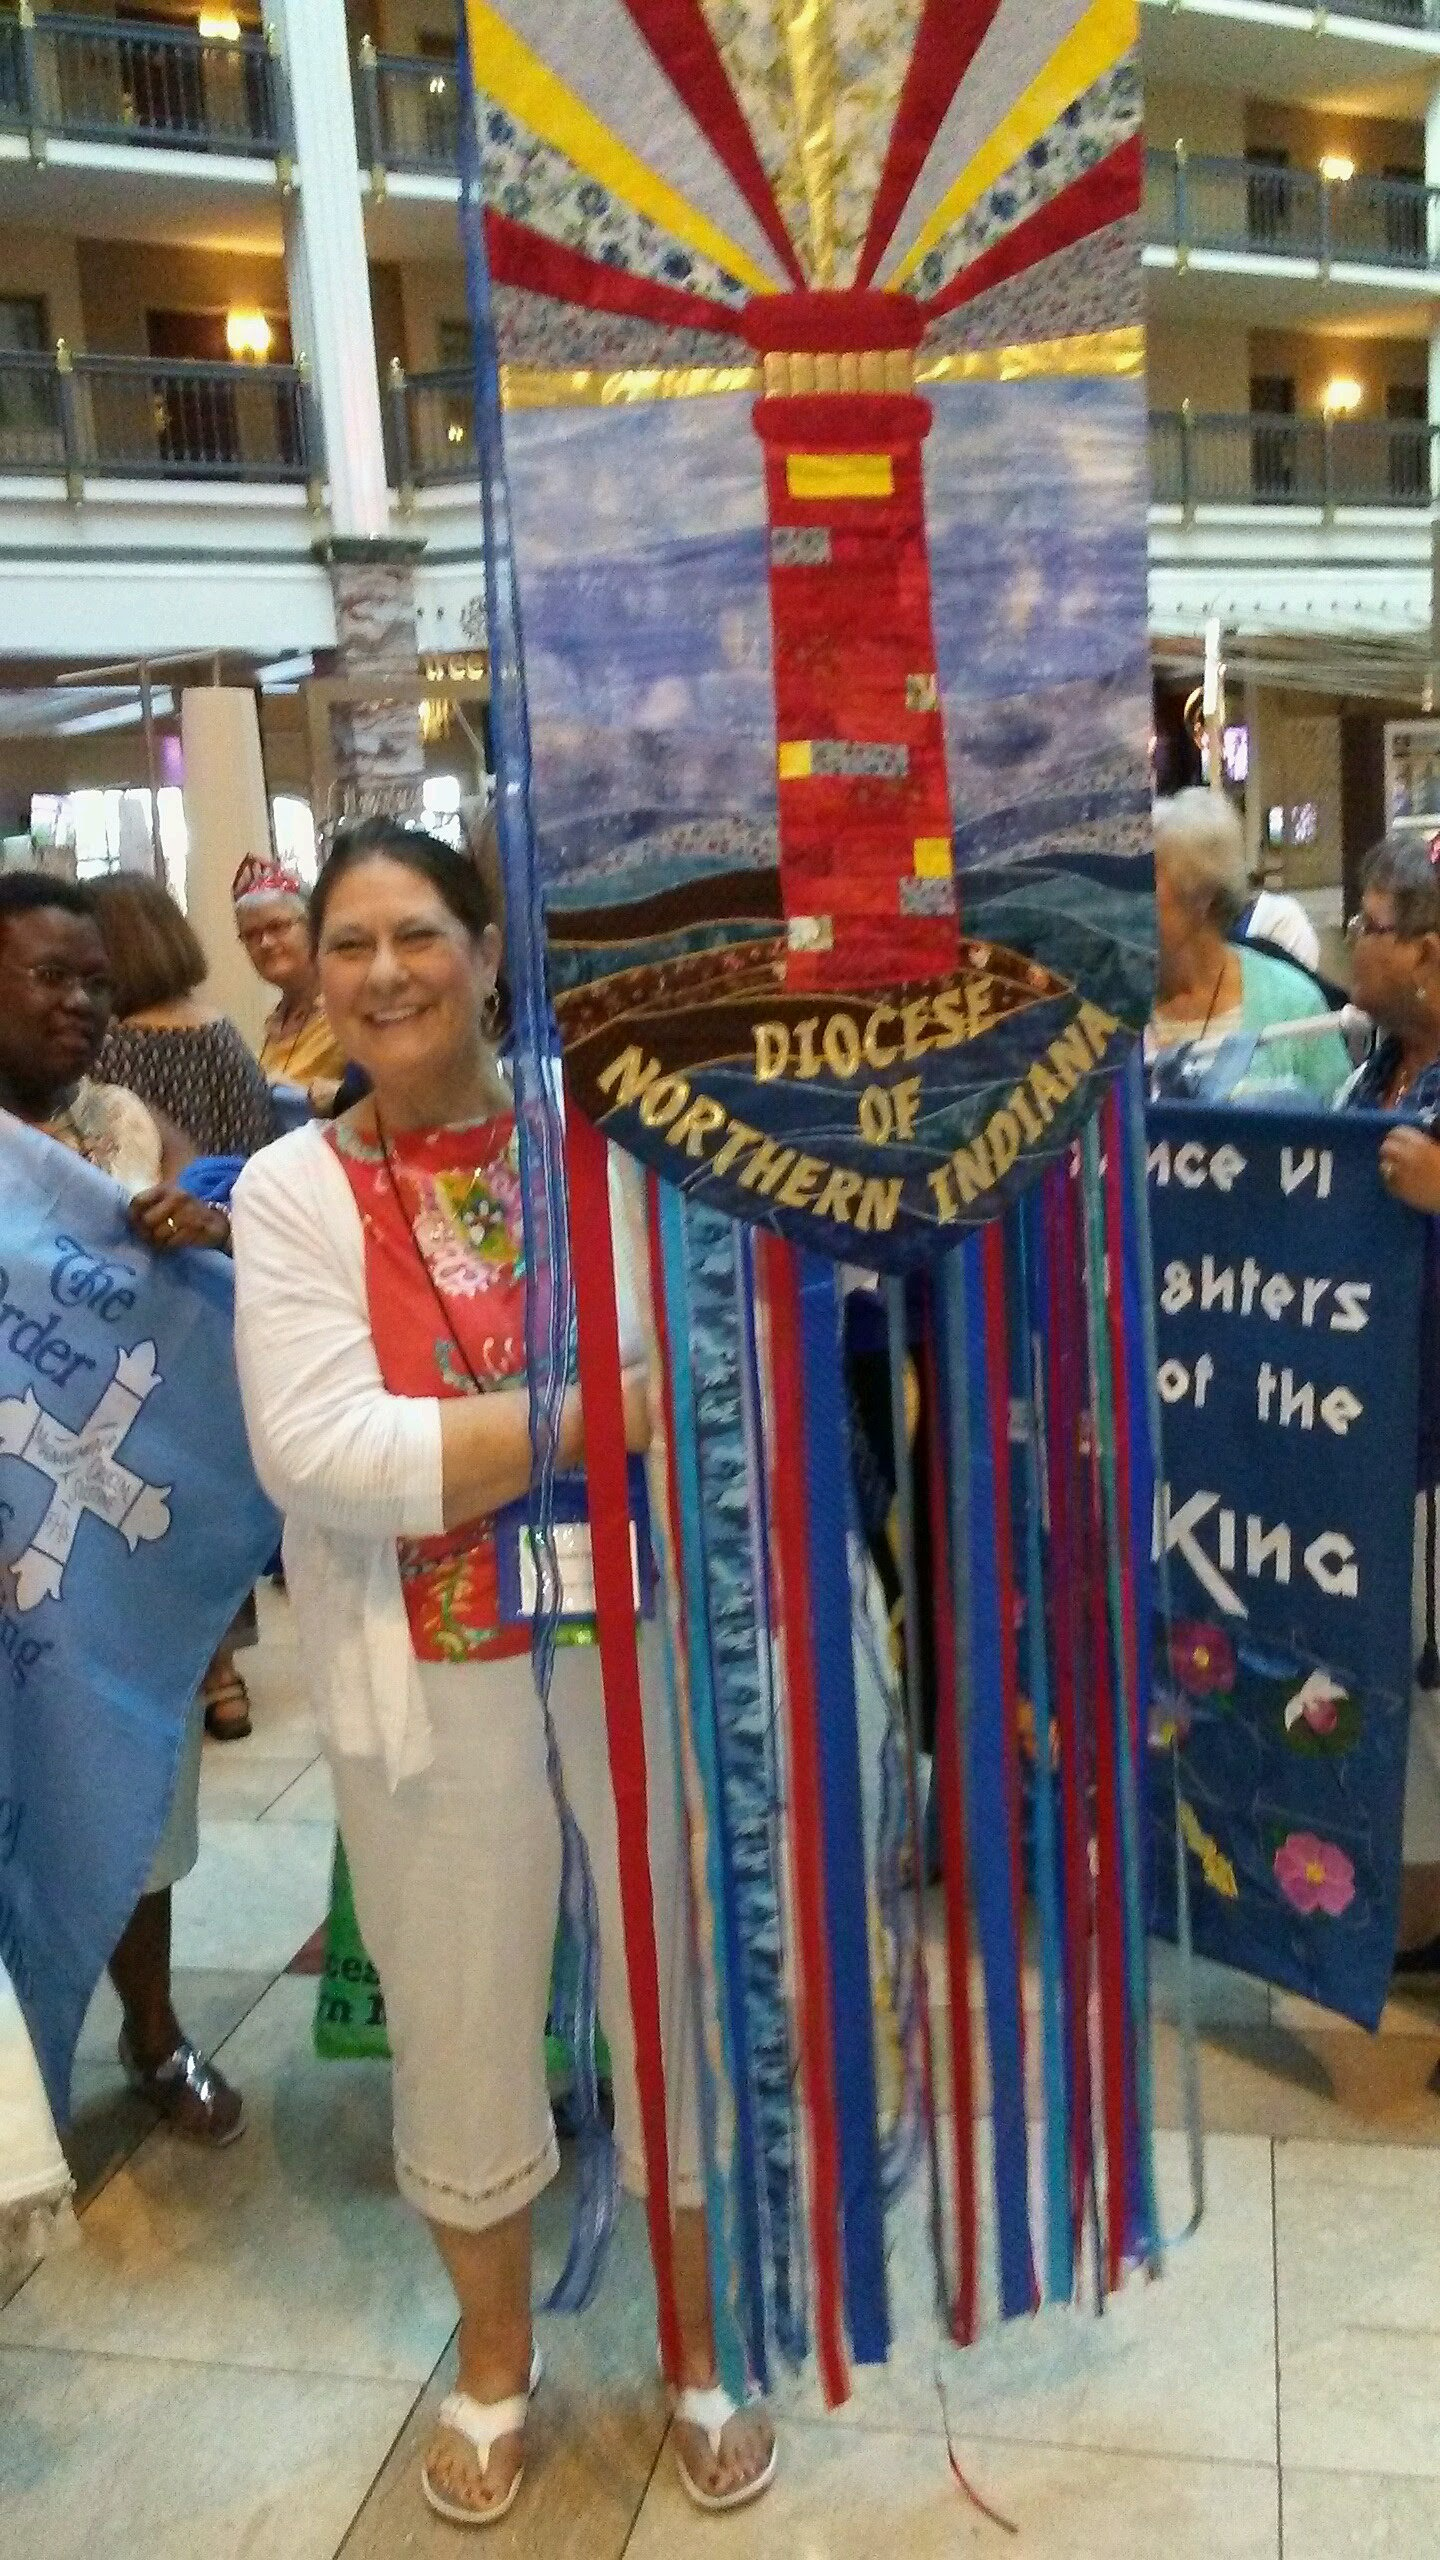 Celeste Hilliard, of the Cathedral of St. James, processing the Northern Indiana DOK banner during the Opening Eucharist of the DOK Triennial.